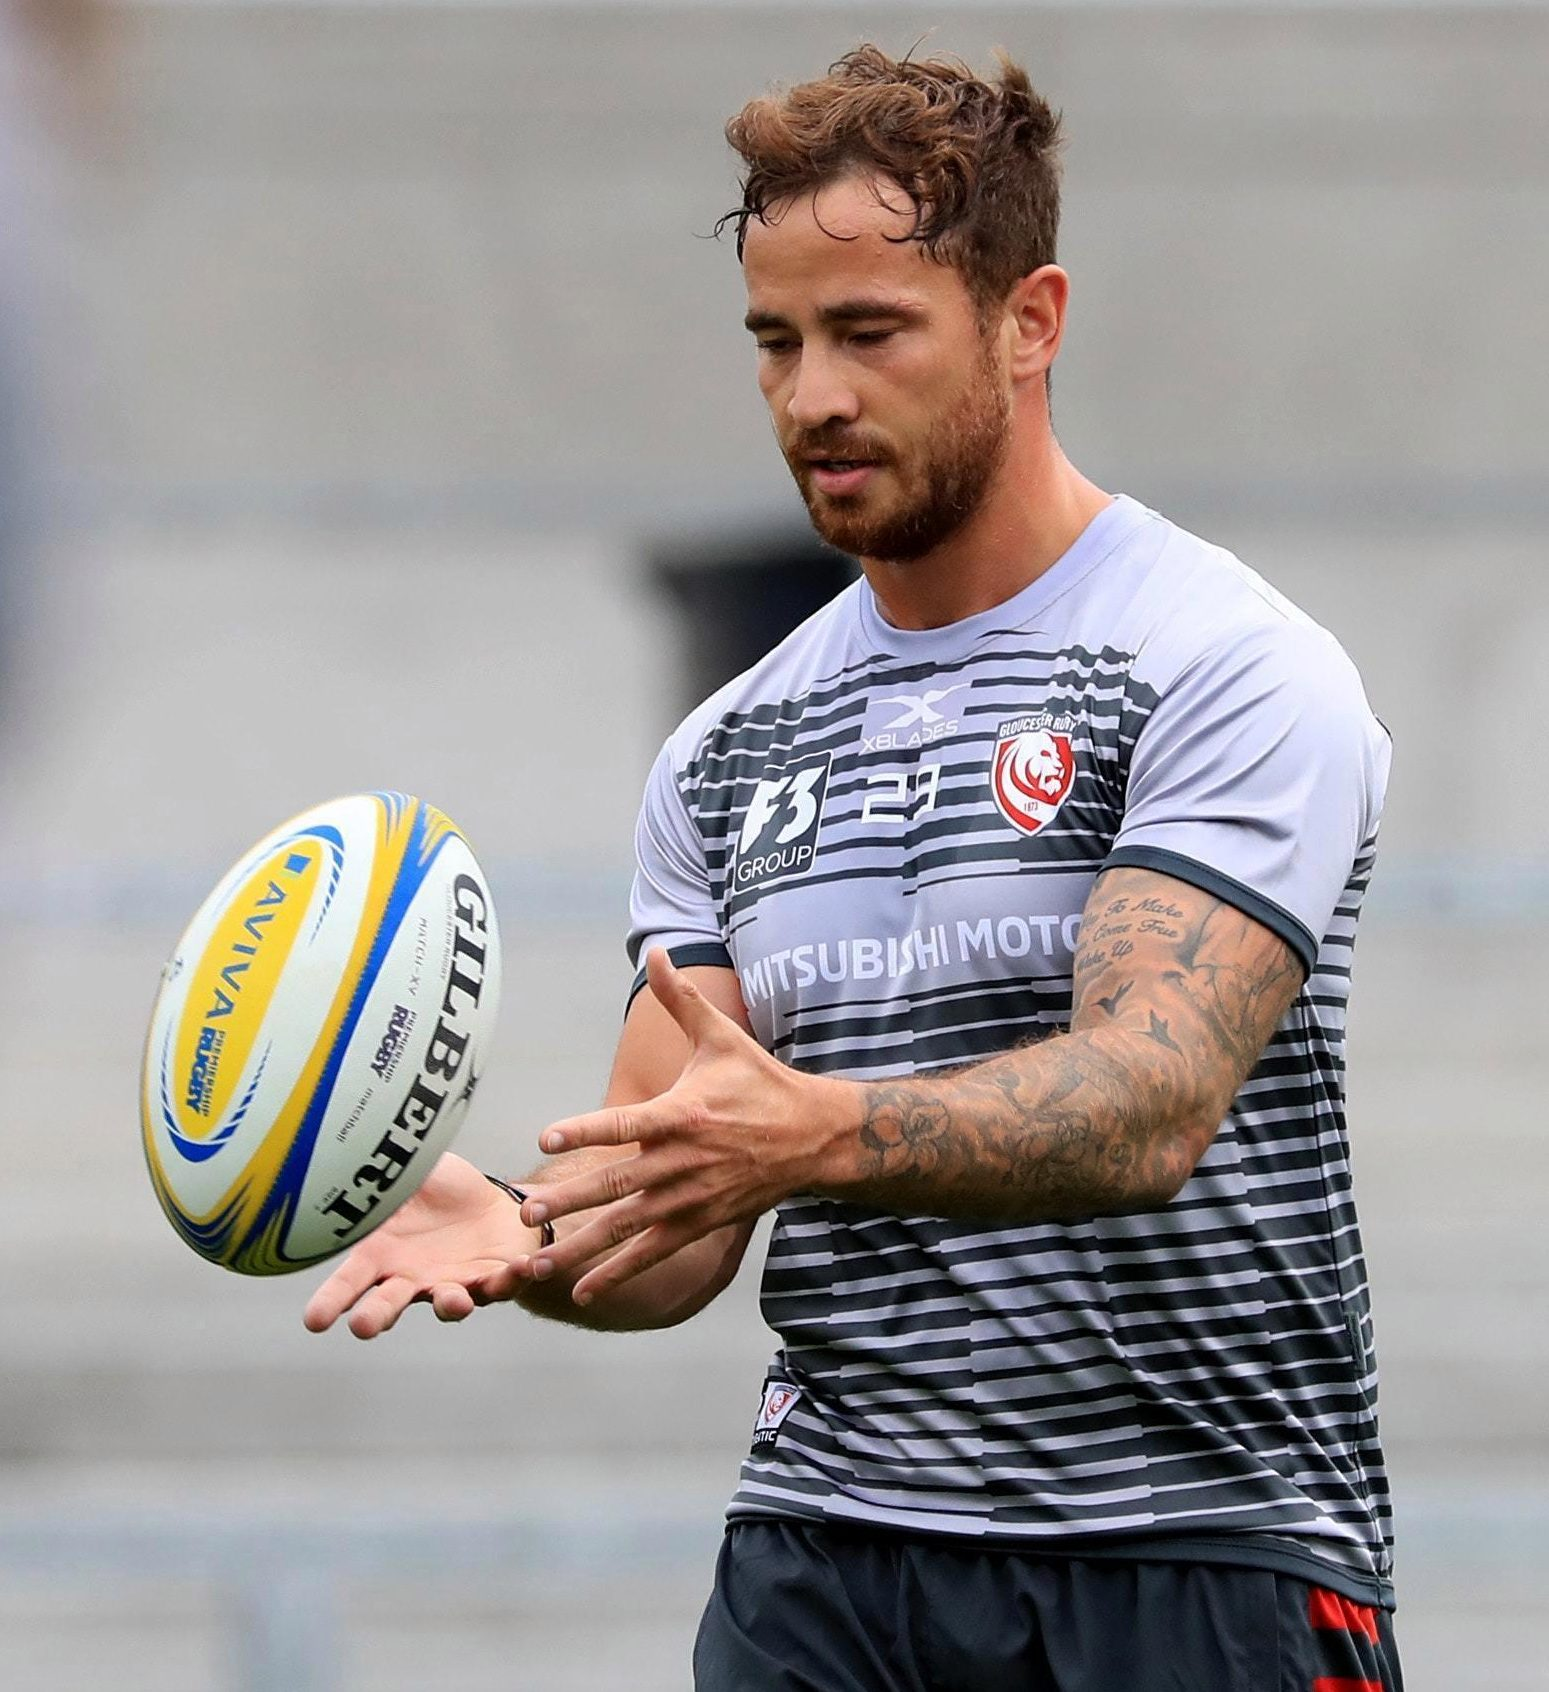 Controversial England star Danny Cipriani has swapped Wasps for Gloucester